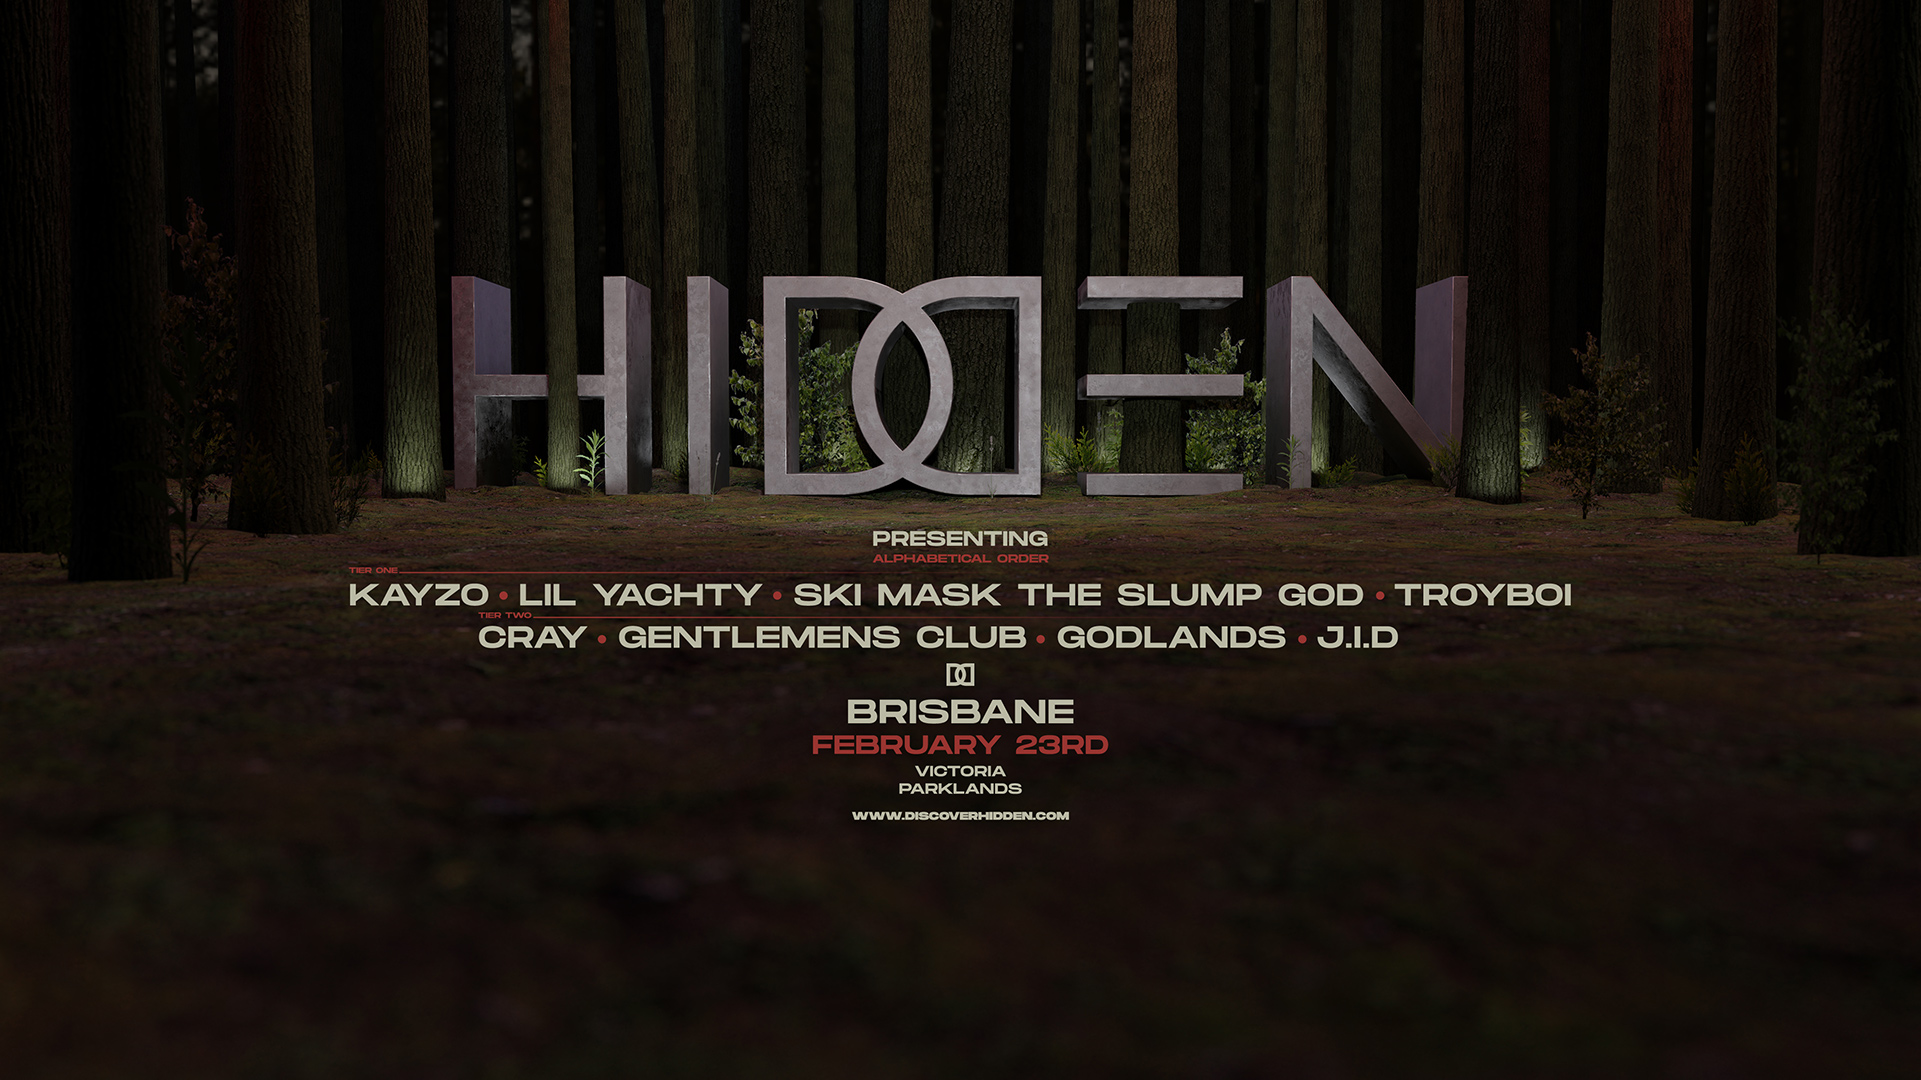 Tickets for HIDDEN 2019 - BRISBANE - The VIP Hidden Experience in Brisbane from Ticketbooth